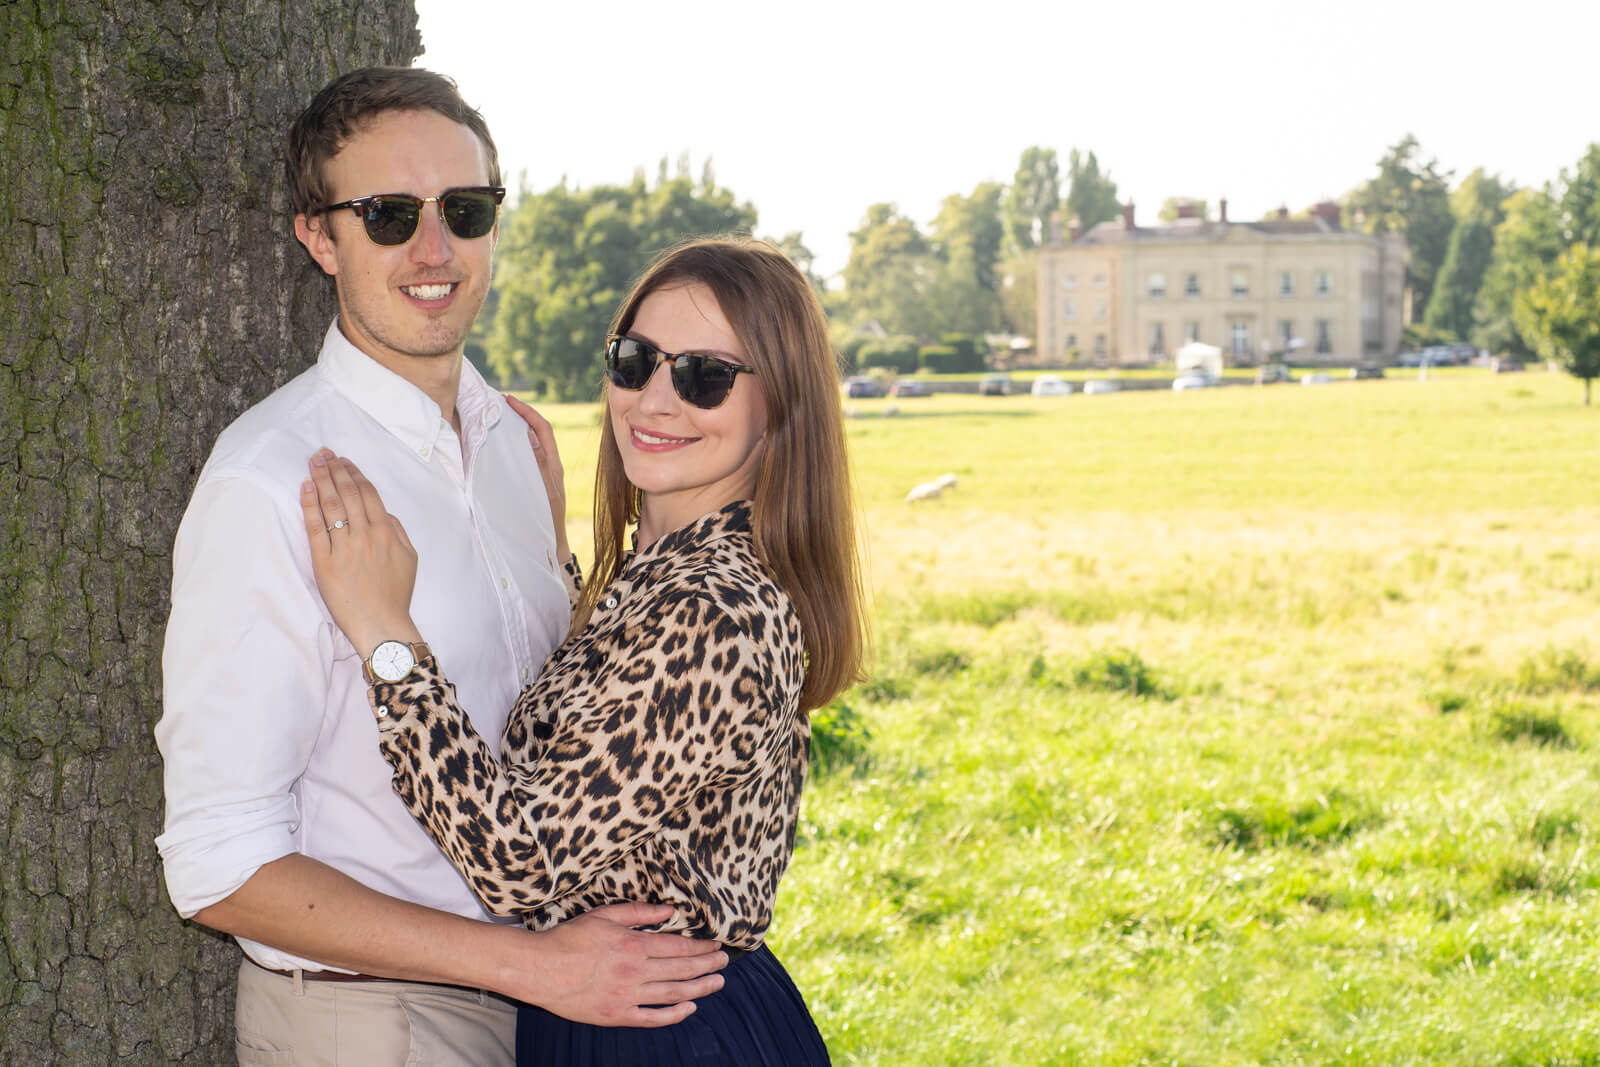 Couple in sunglasses lean against tree on a sunny day